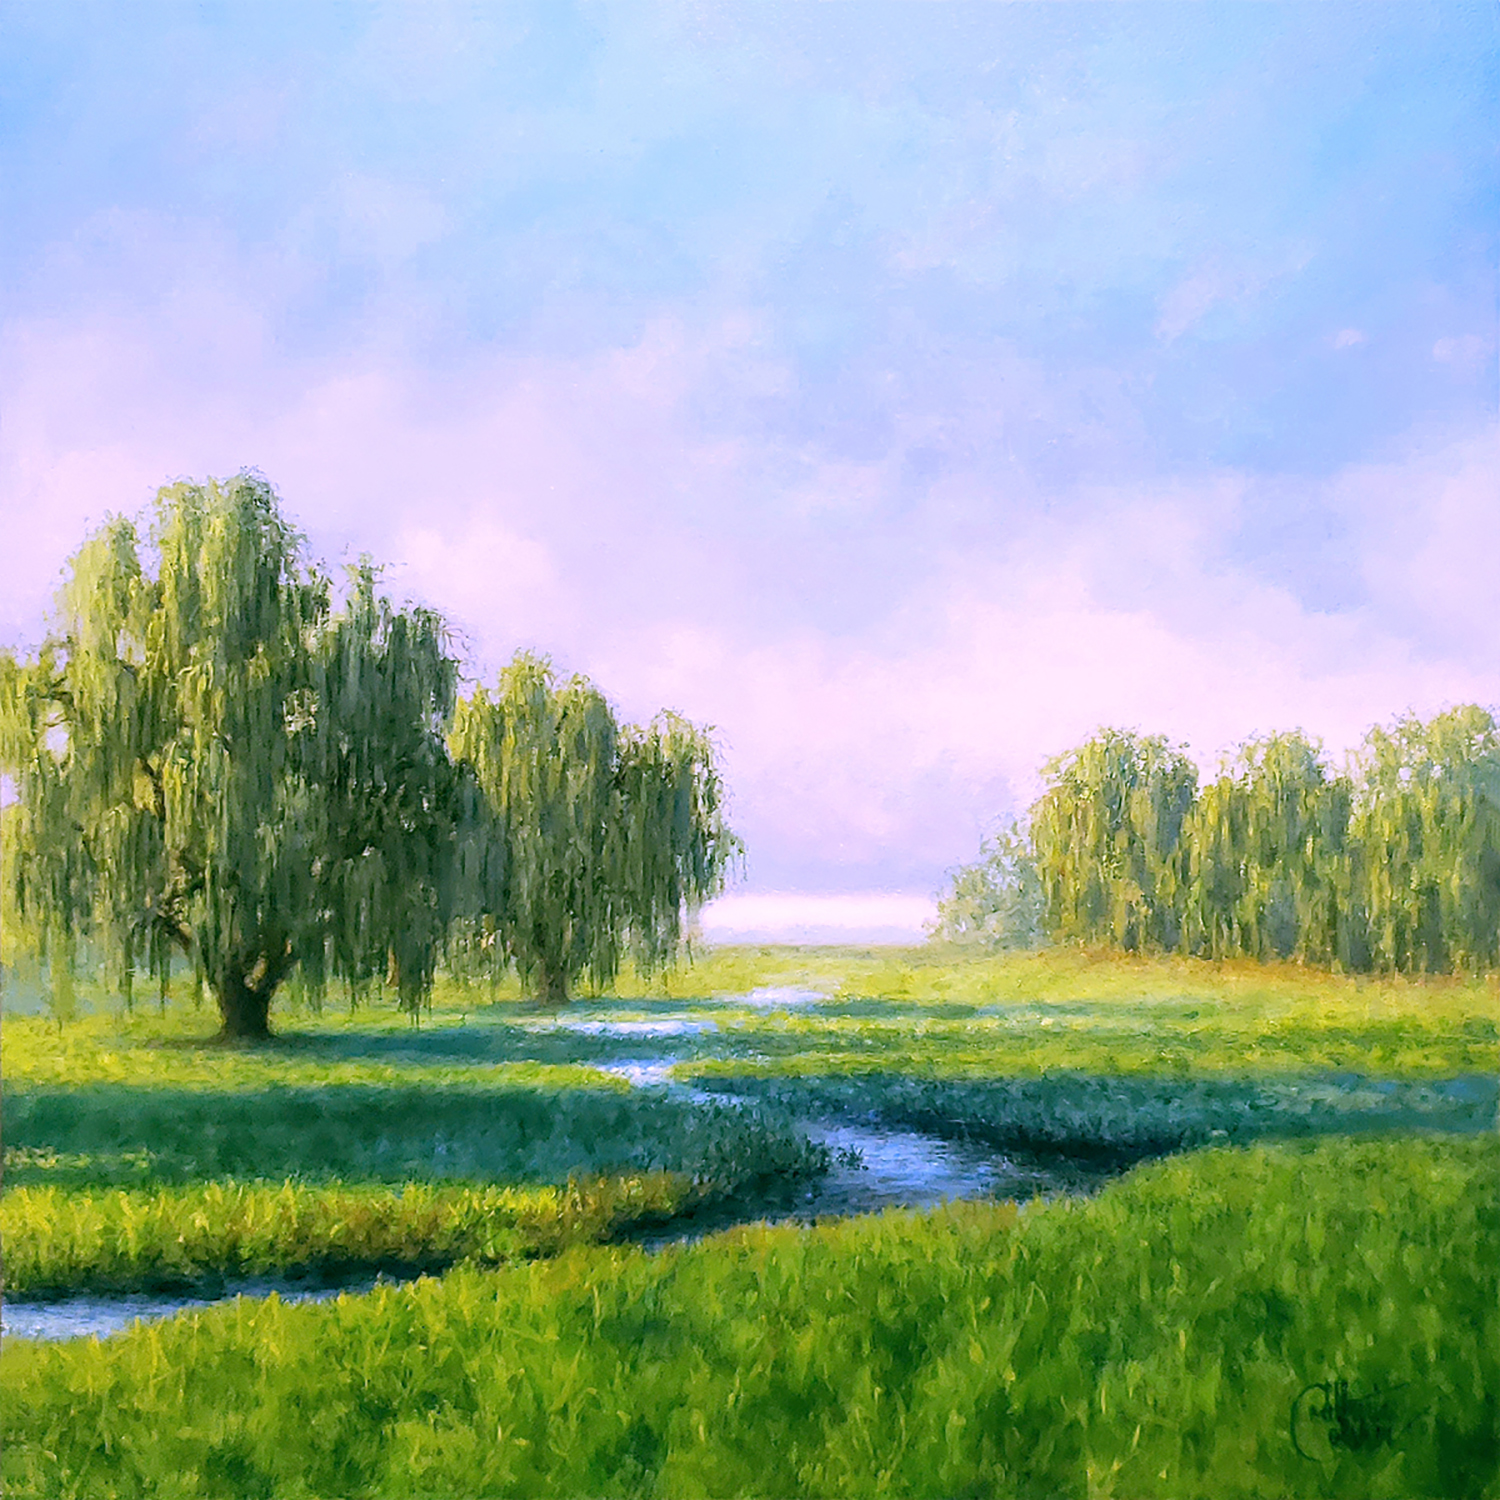 Morning Willows - Catherine Colsher